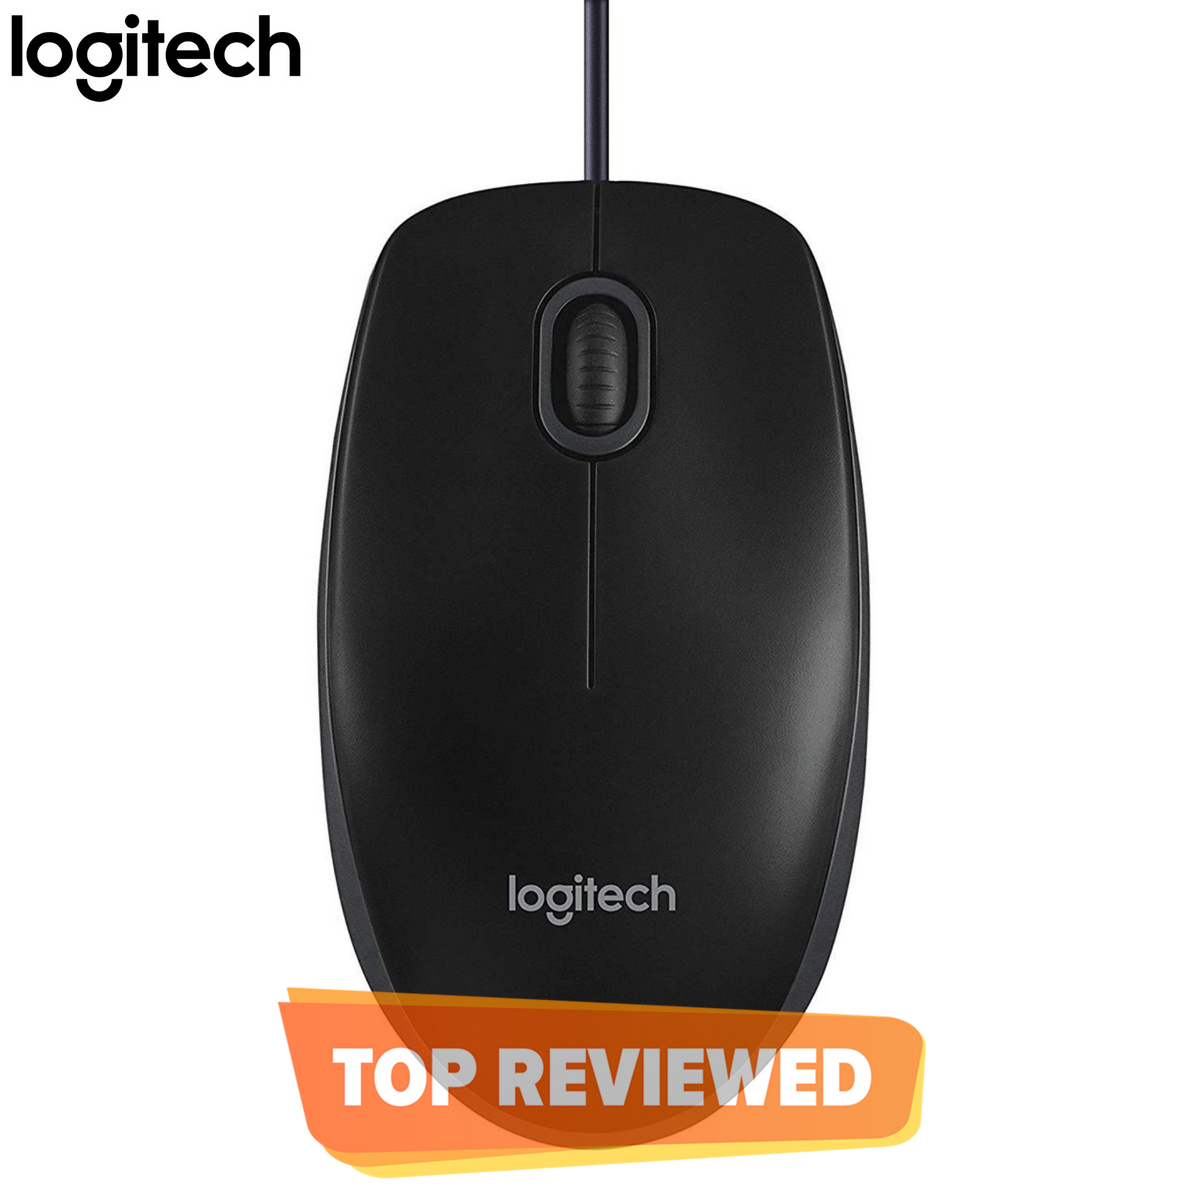 Logitech B100 Optical USB Wired Mouse